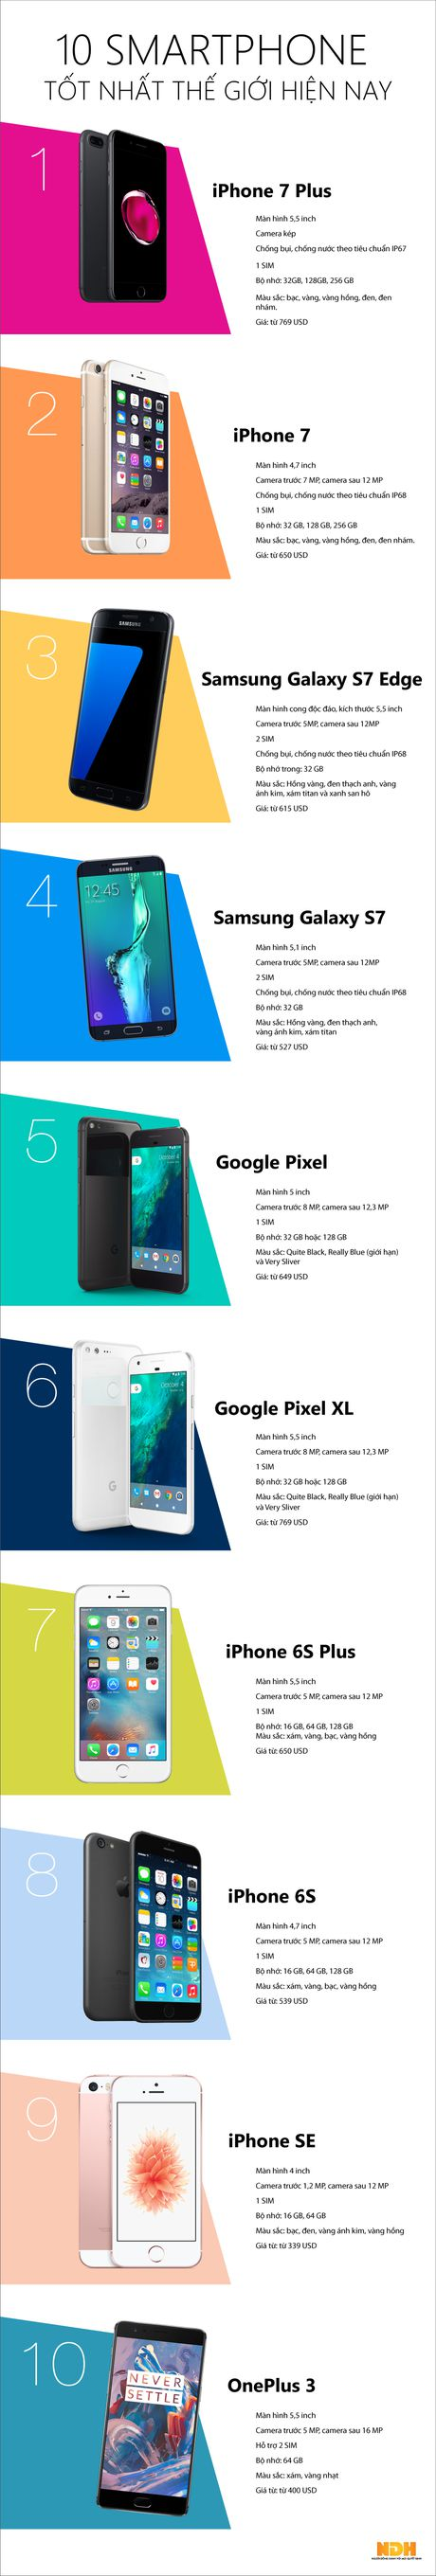 10 smartphone tot nhat the gioi hien nay - Anh 1